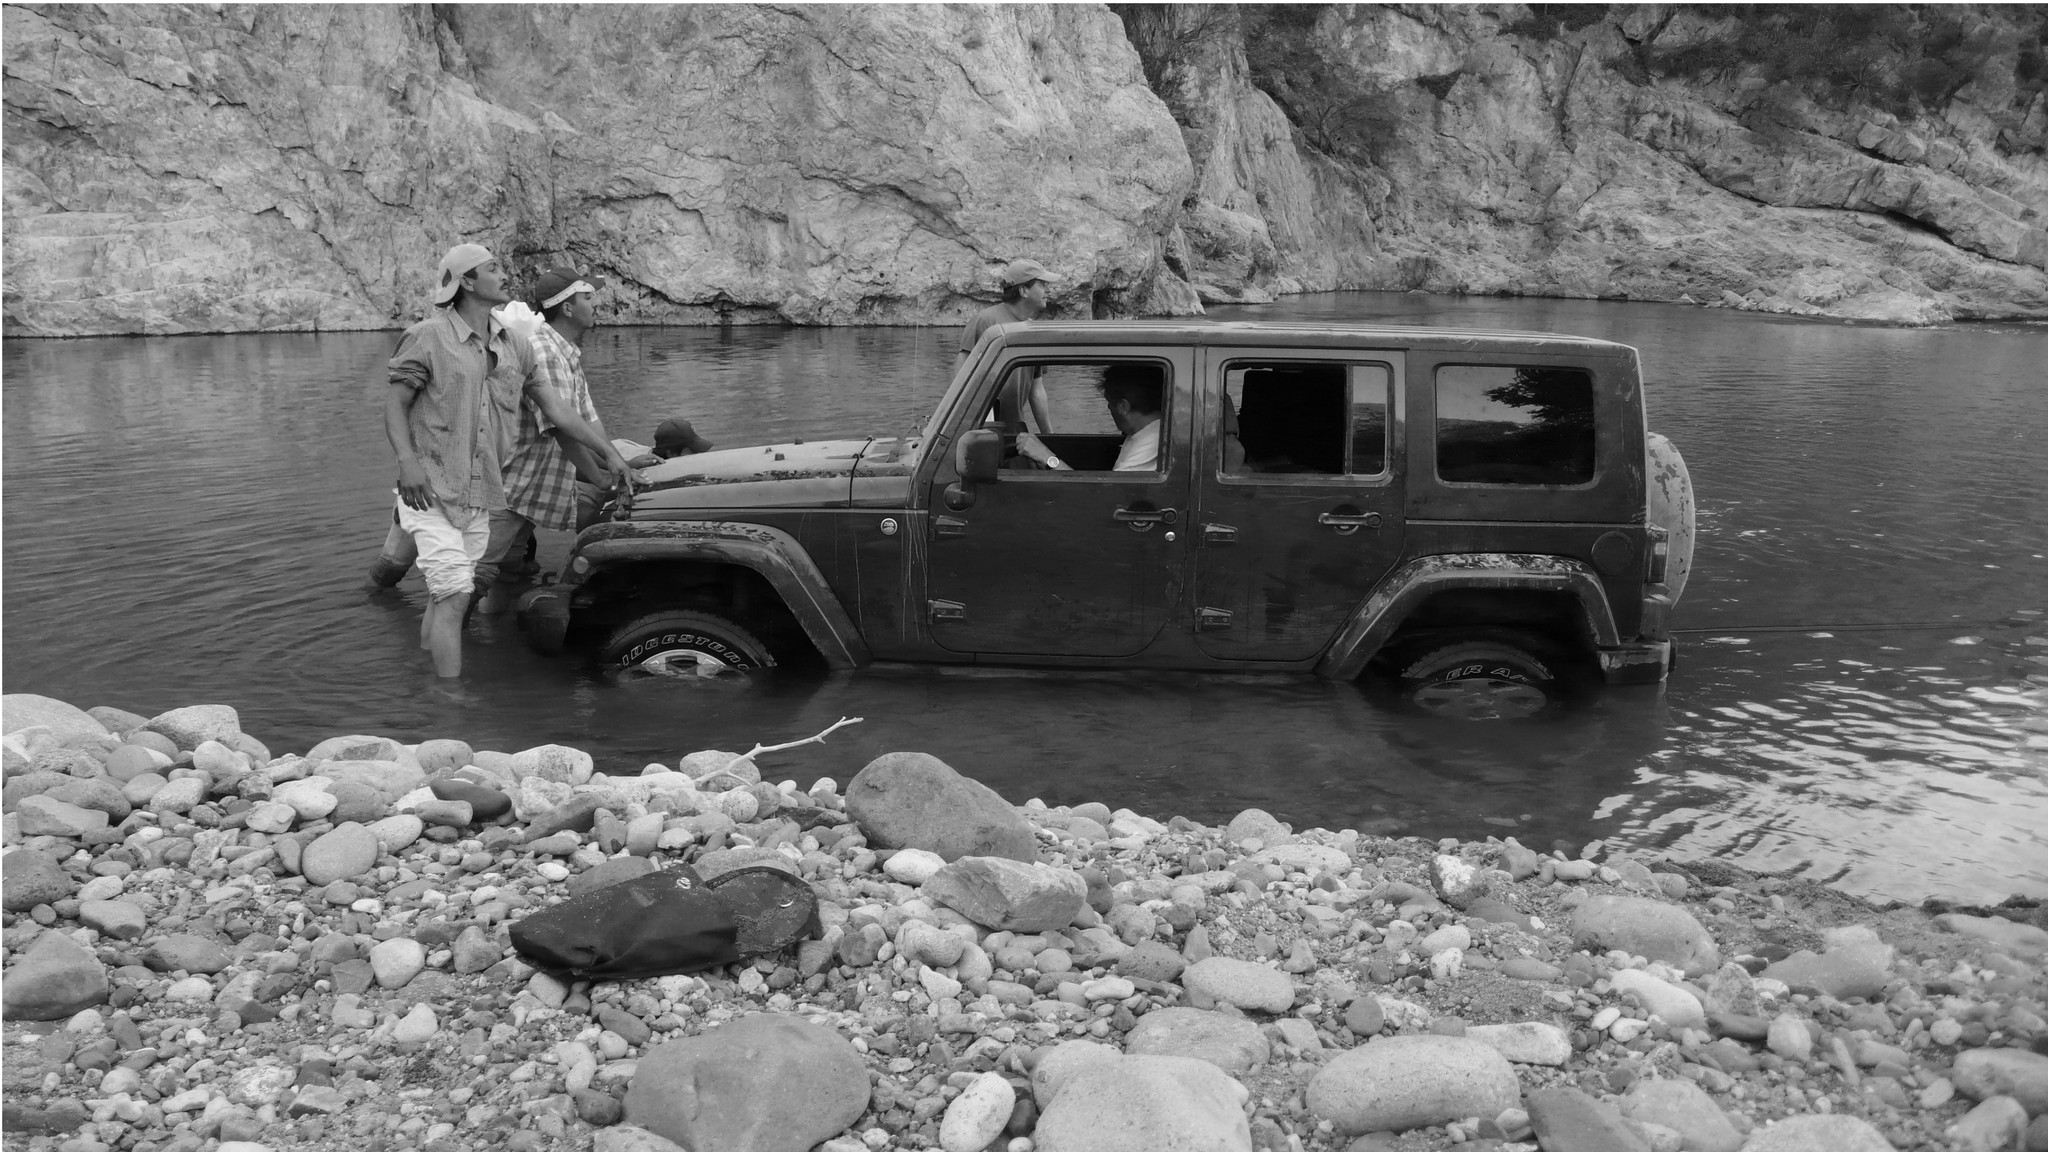 Martin's jeep, stuck in a riverbed.